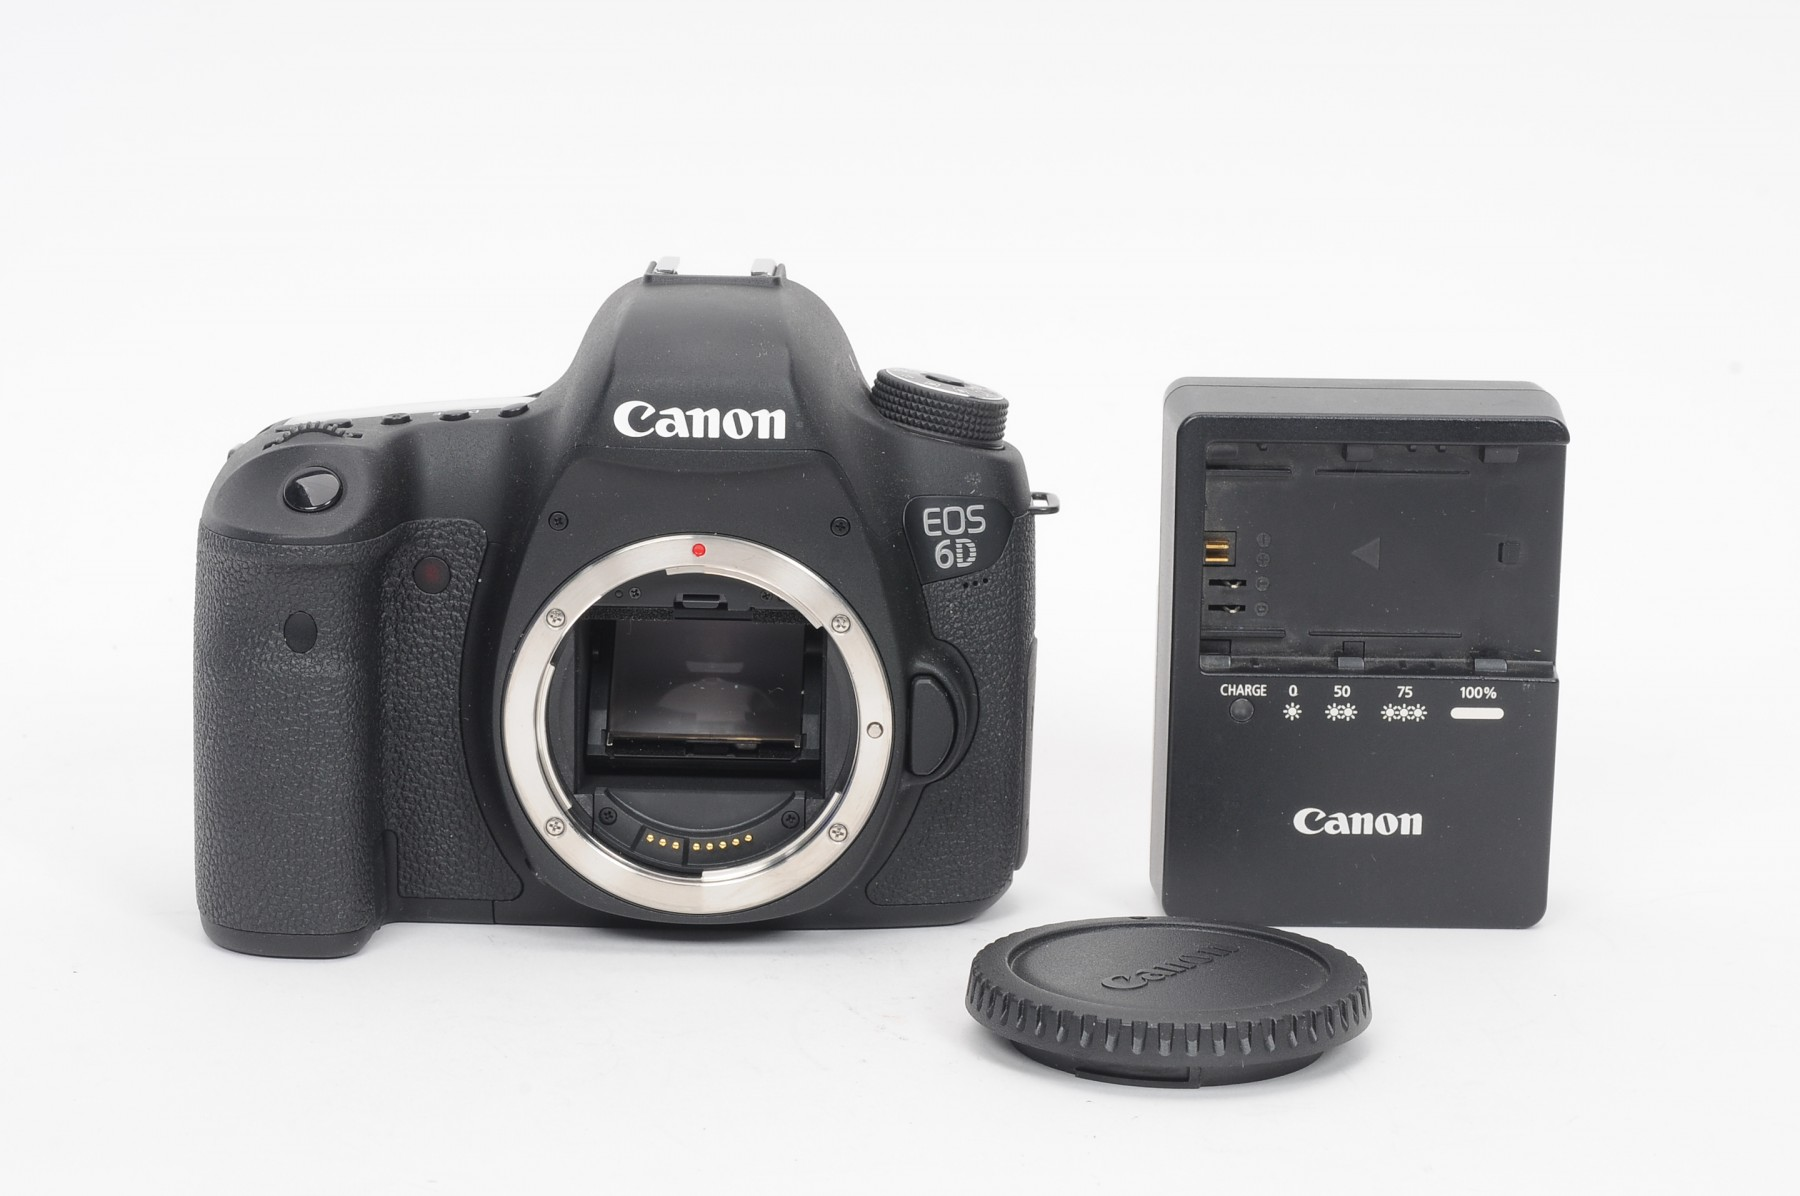 canon6d w charger image